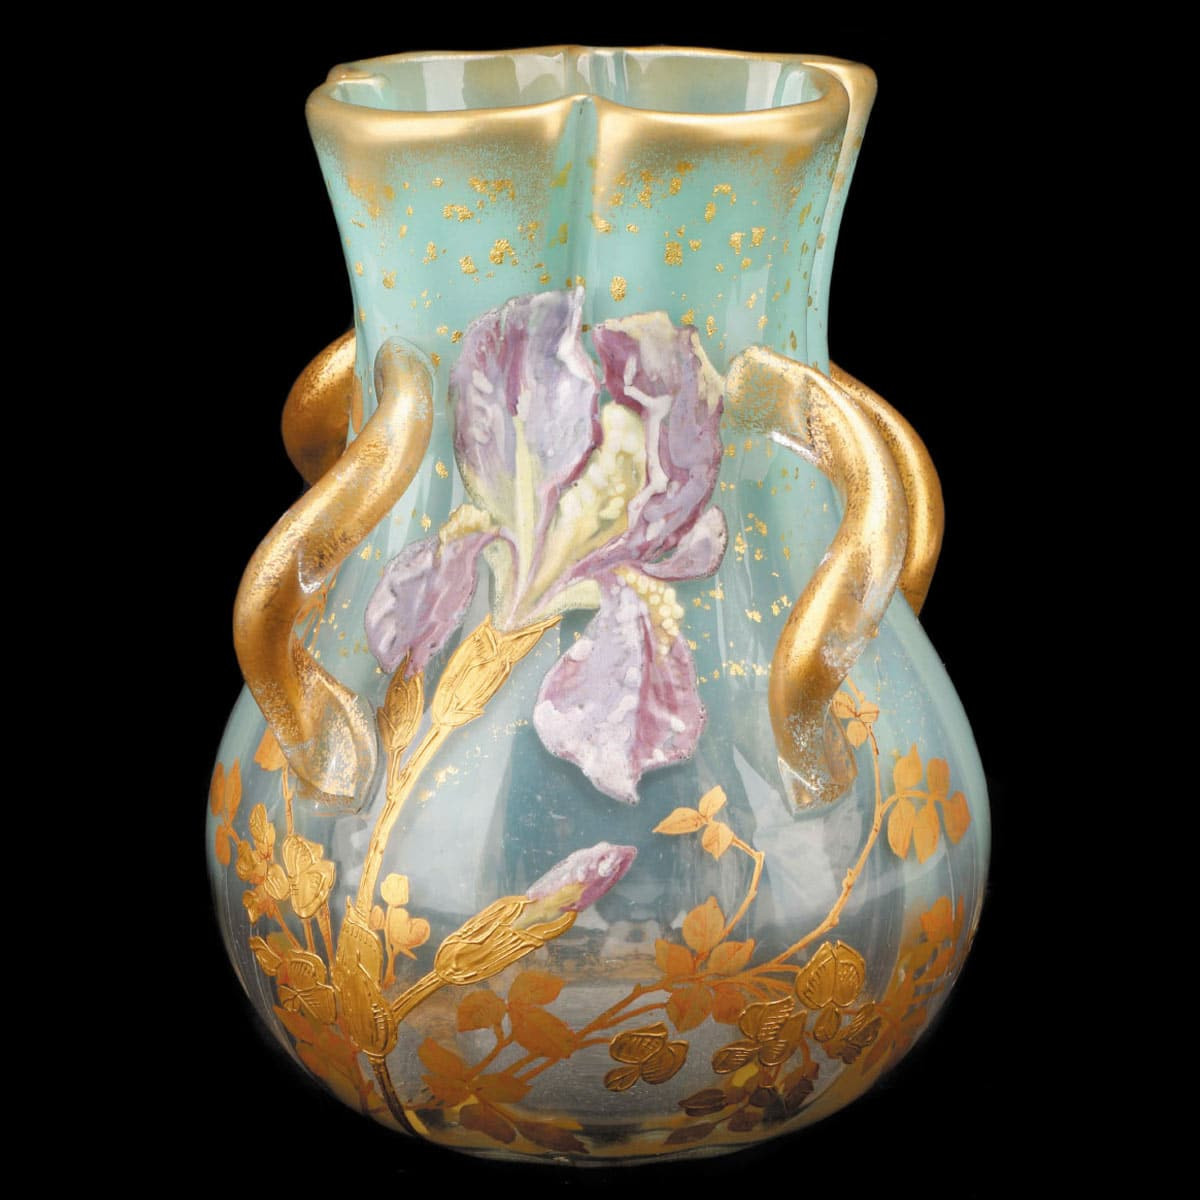 Galle Cameo Glass Vase Of Glass Crystal with Unique Late 19th C Mont Joye Vase Ahlers Ogletree Auction Gallery